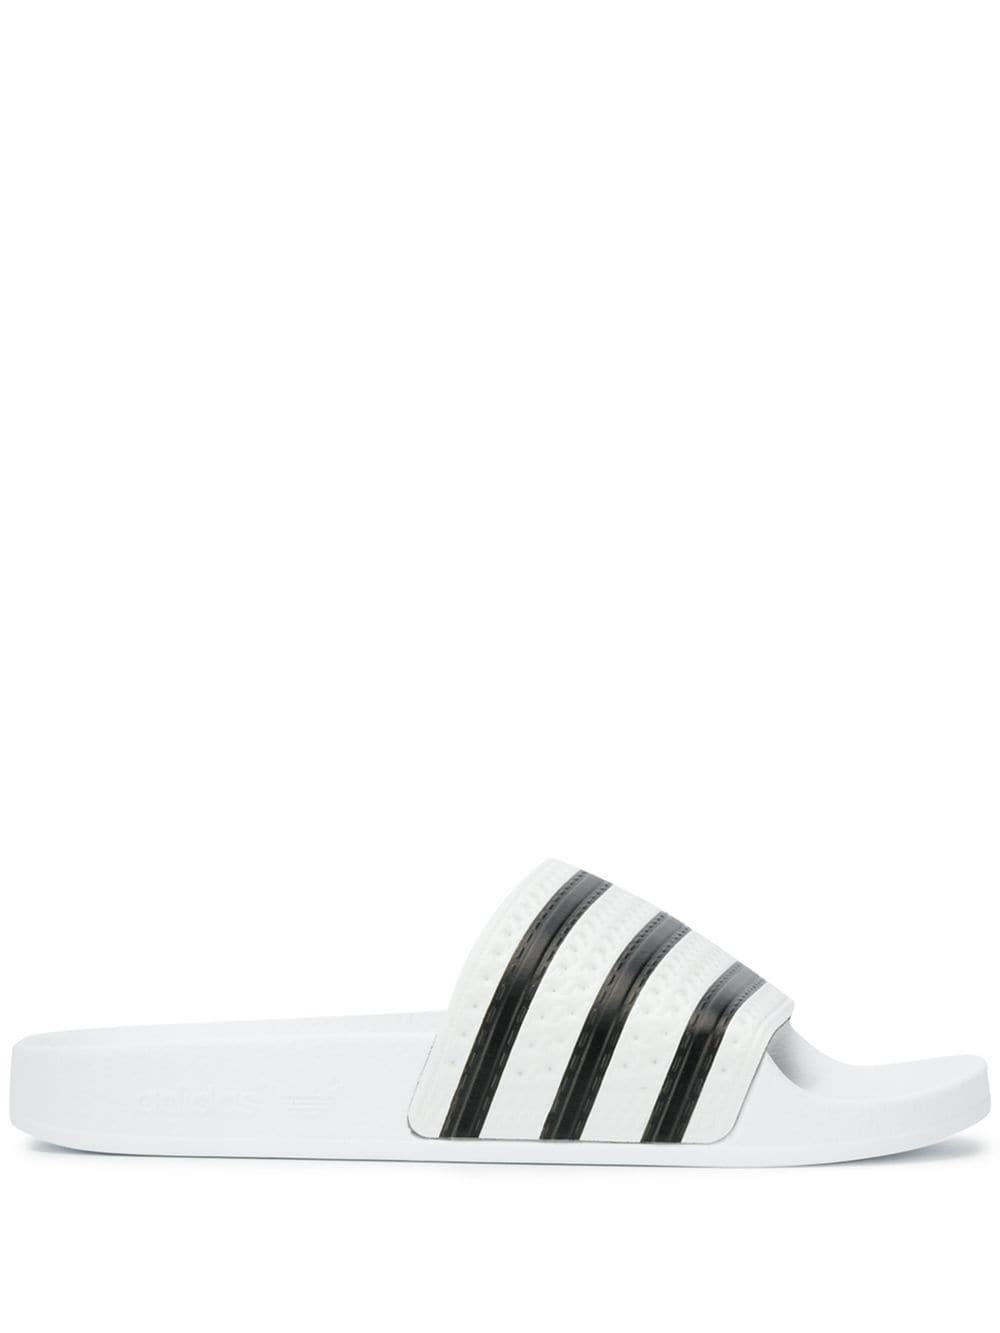 best service ae269 4a2cf Originated in 1972, the Adidas Originals Adilette slides were designed for  comfort and relaxation and have gone on to garner cult success as a  mainstay in ...